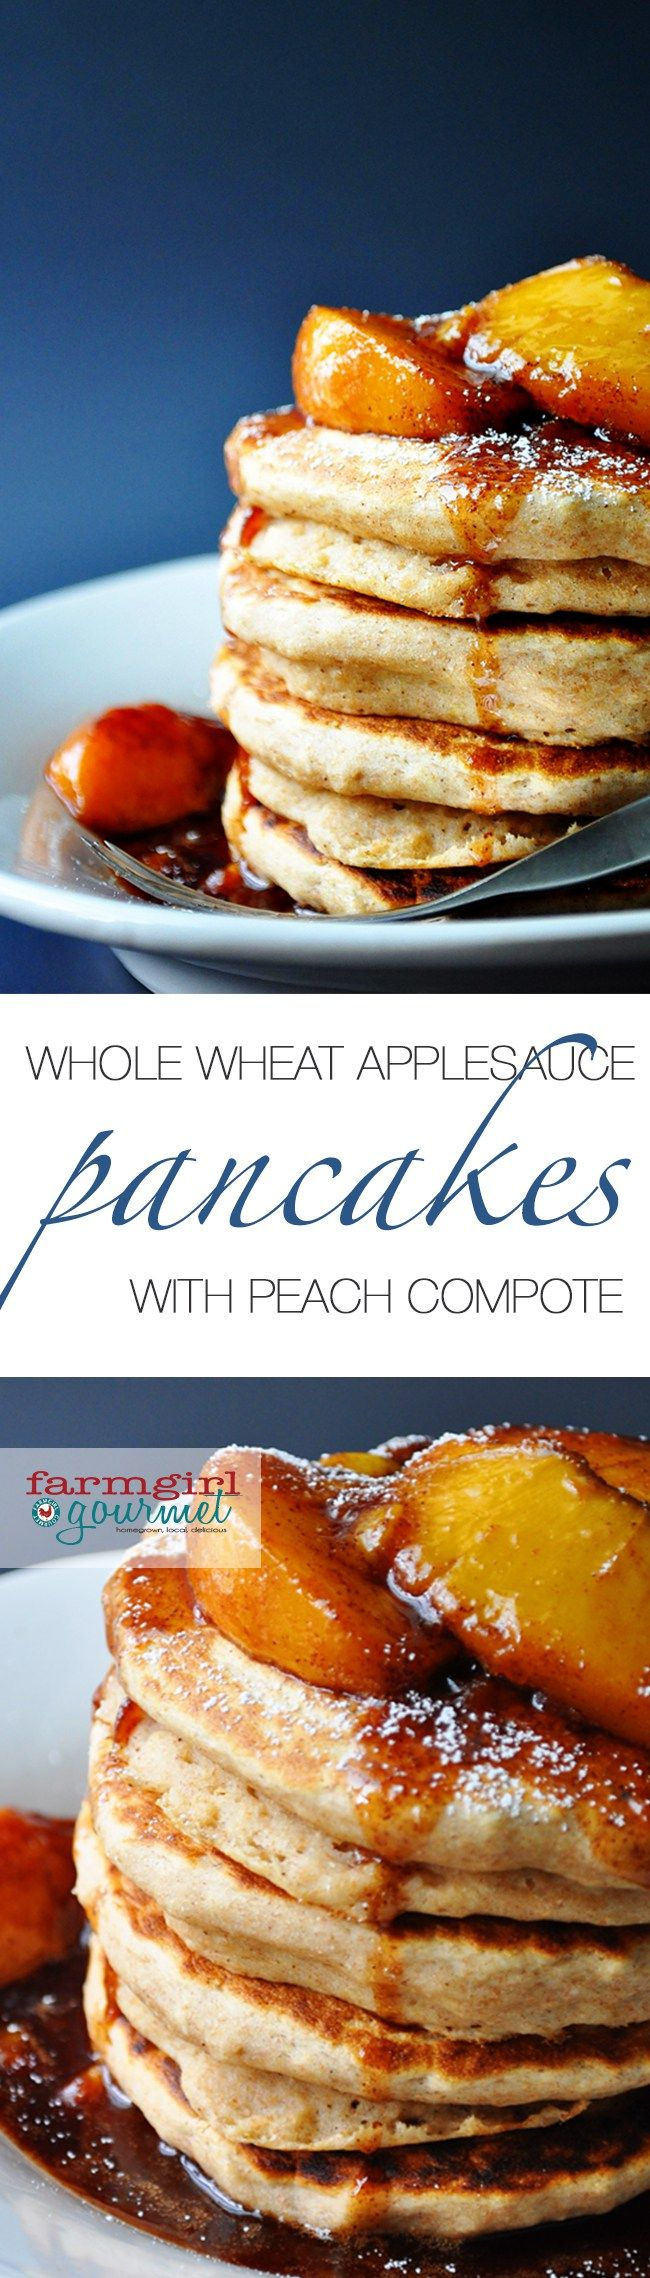 Easy to make whole wheat applesauce pancakes with a fresh peach compote. Make your family happy with a stack of these today!